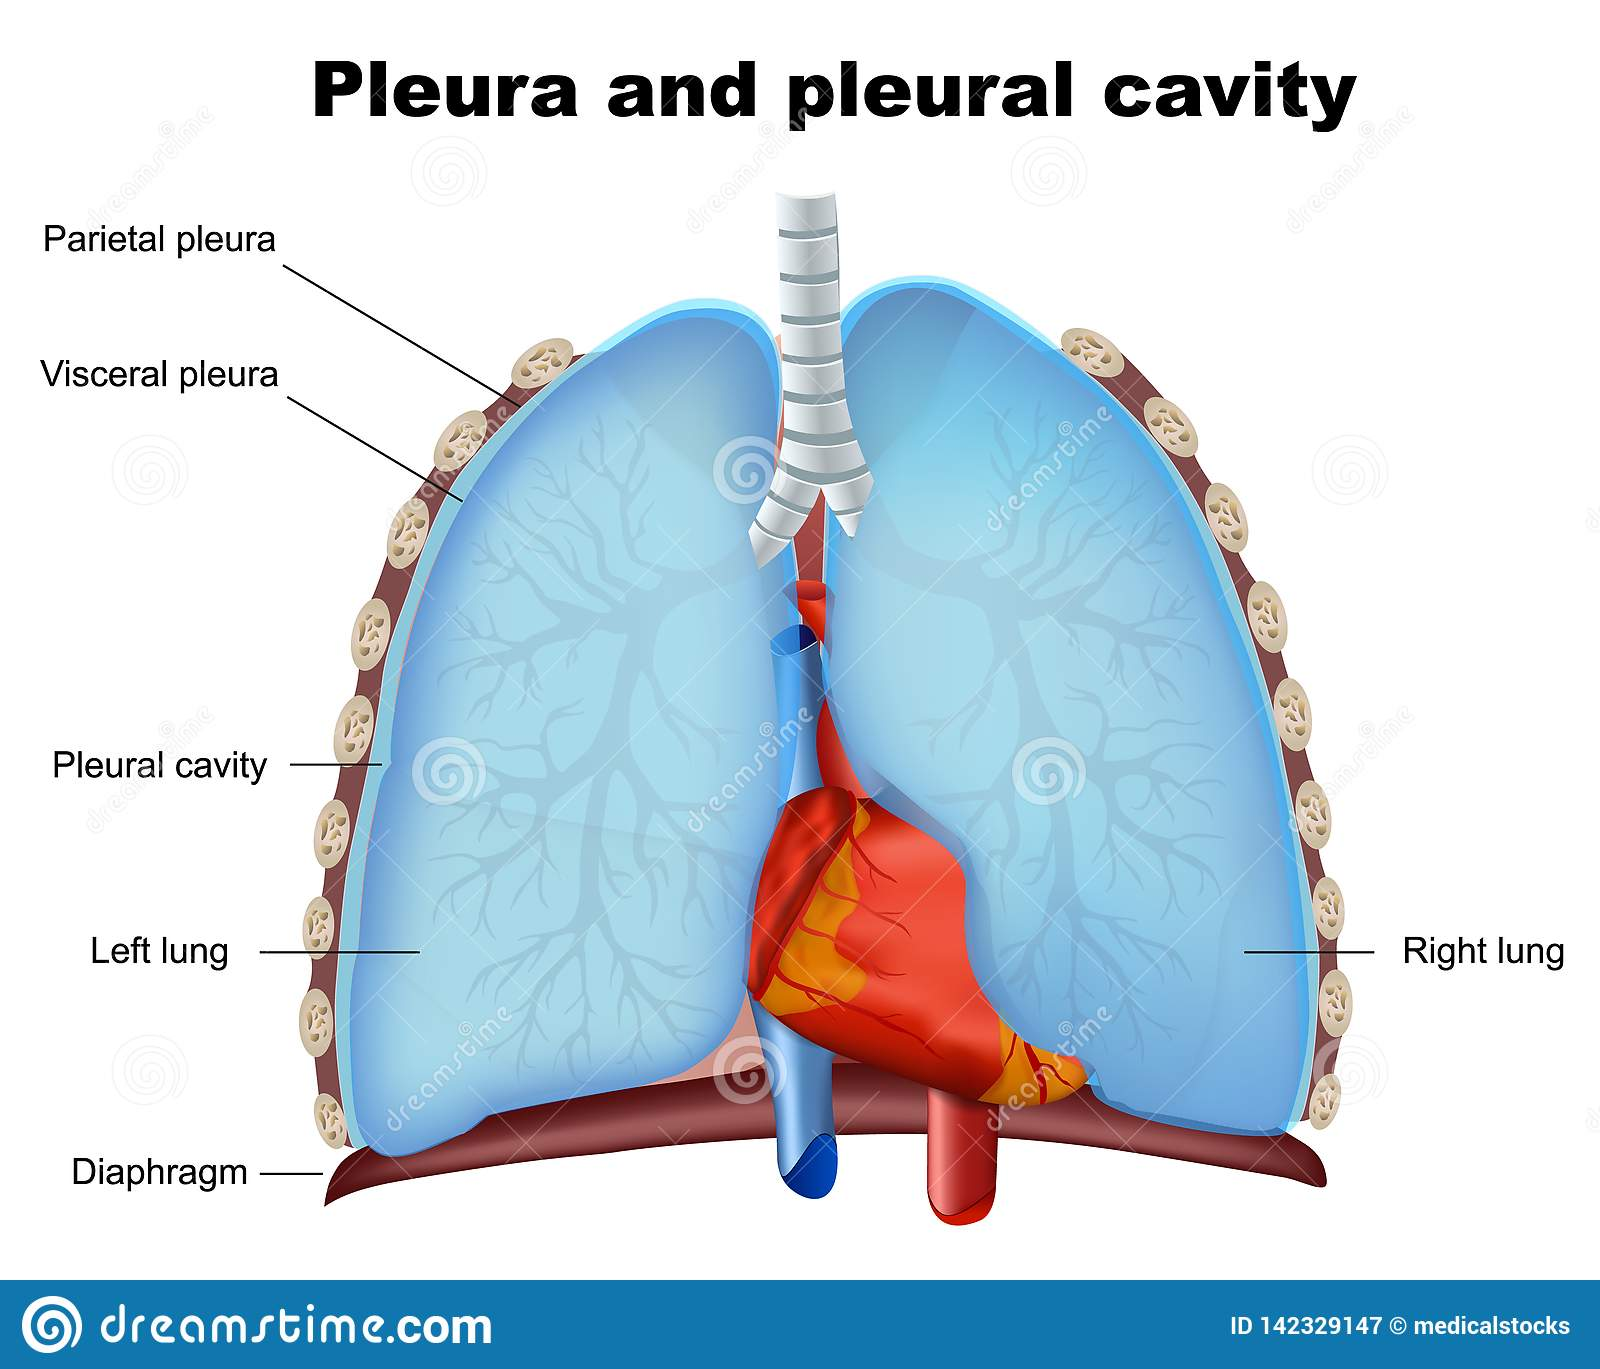 Lung pleura and pleural cavity medical illustration on white background